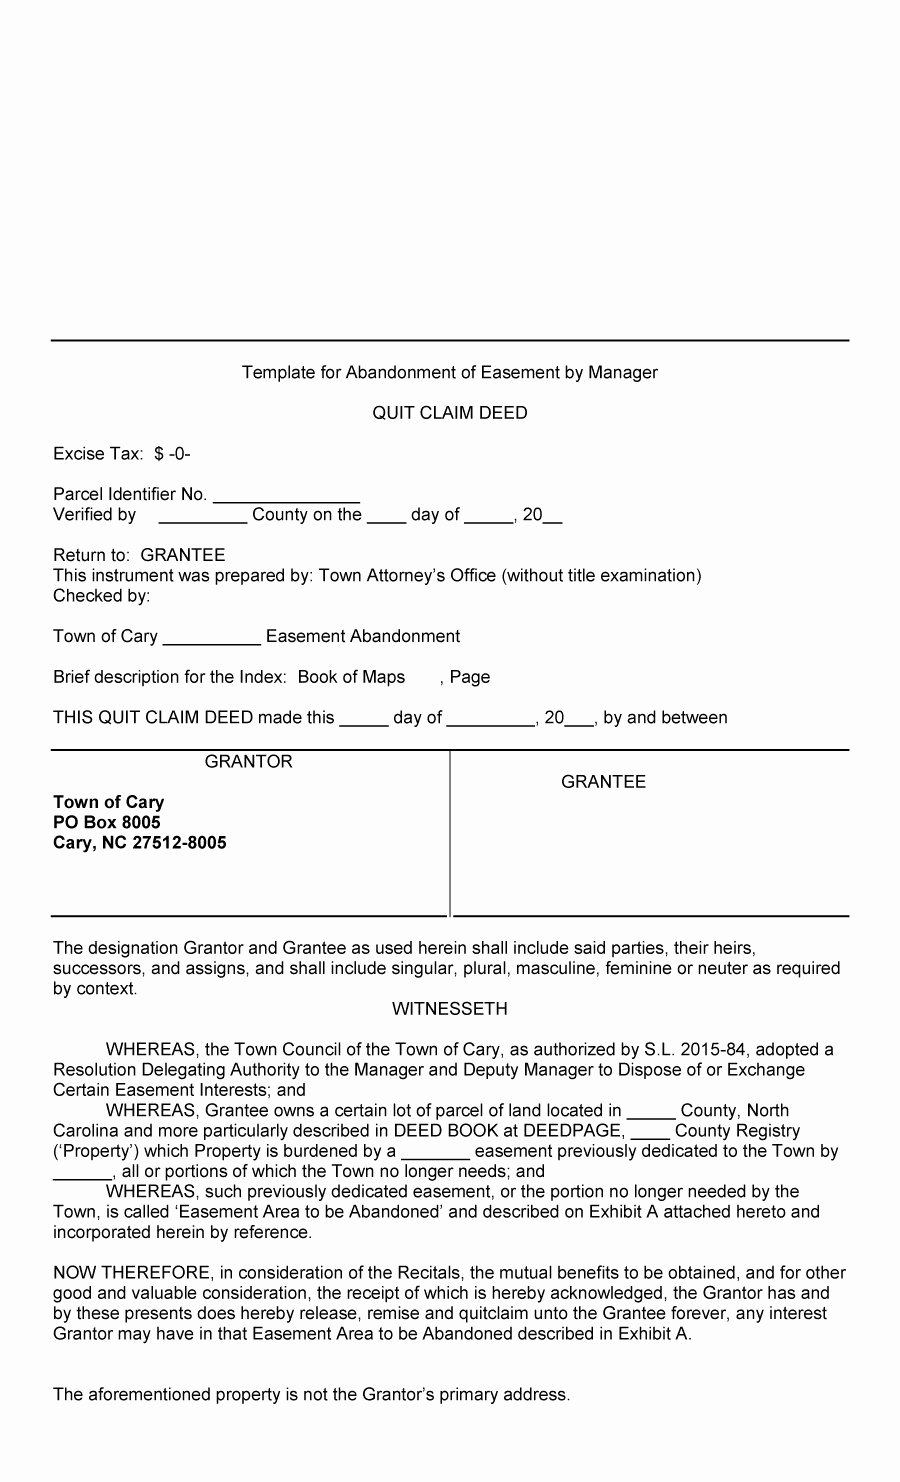 Sample Driveway Easement Agreement Awesome 47 Free Quit Claim Deed forms & Templates Free Template